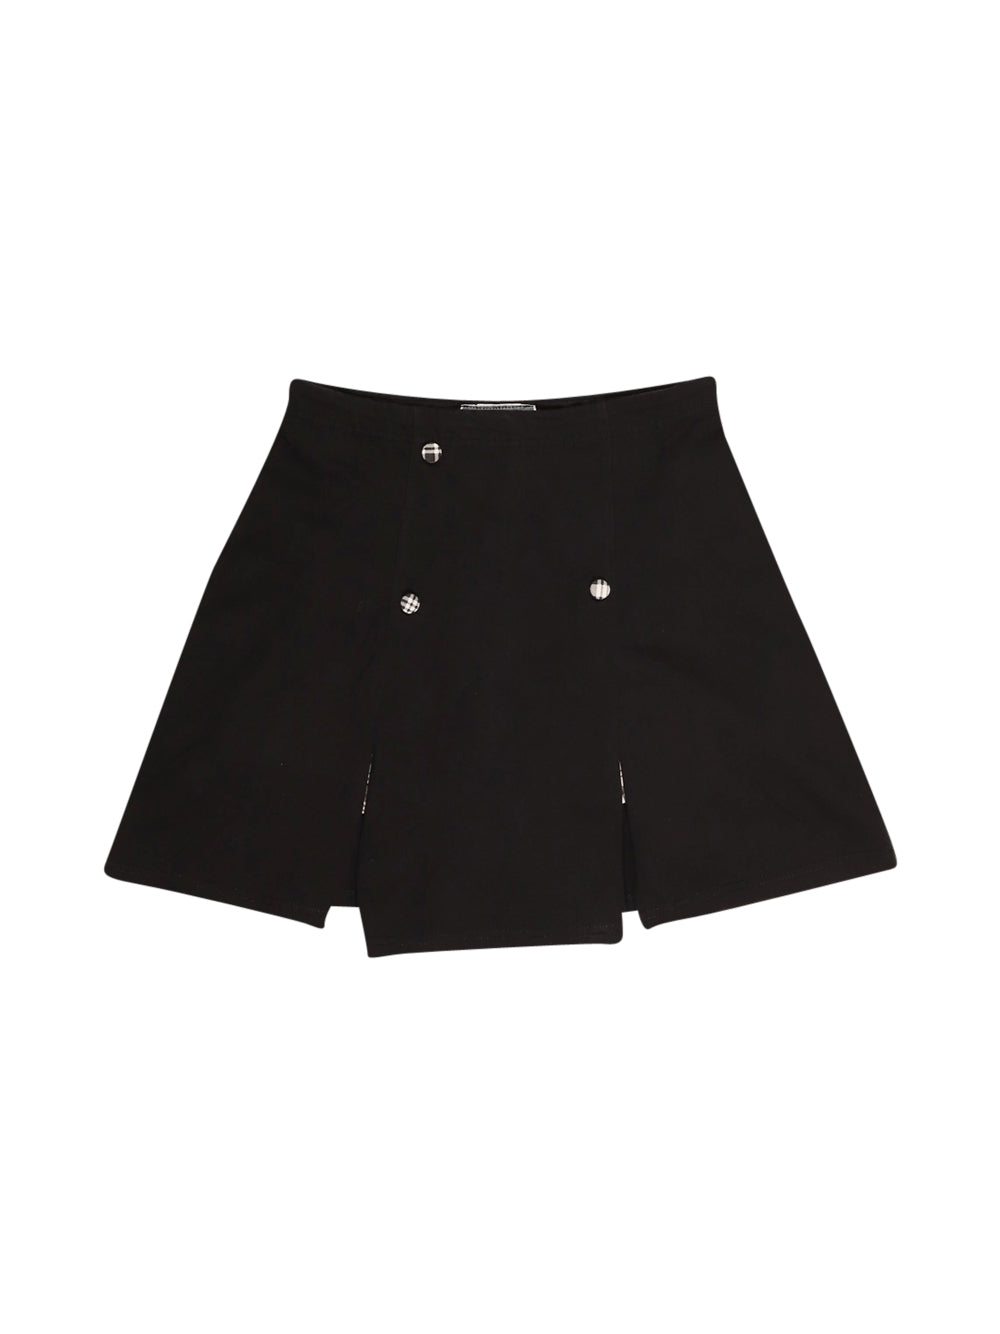 Front photo of Preloved onix Black Woman's shorts - size 10/M